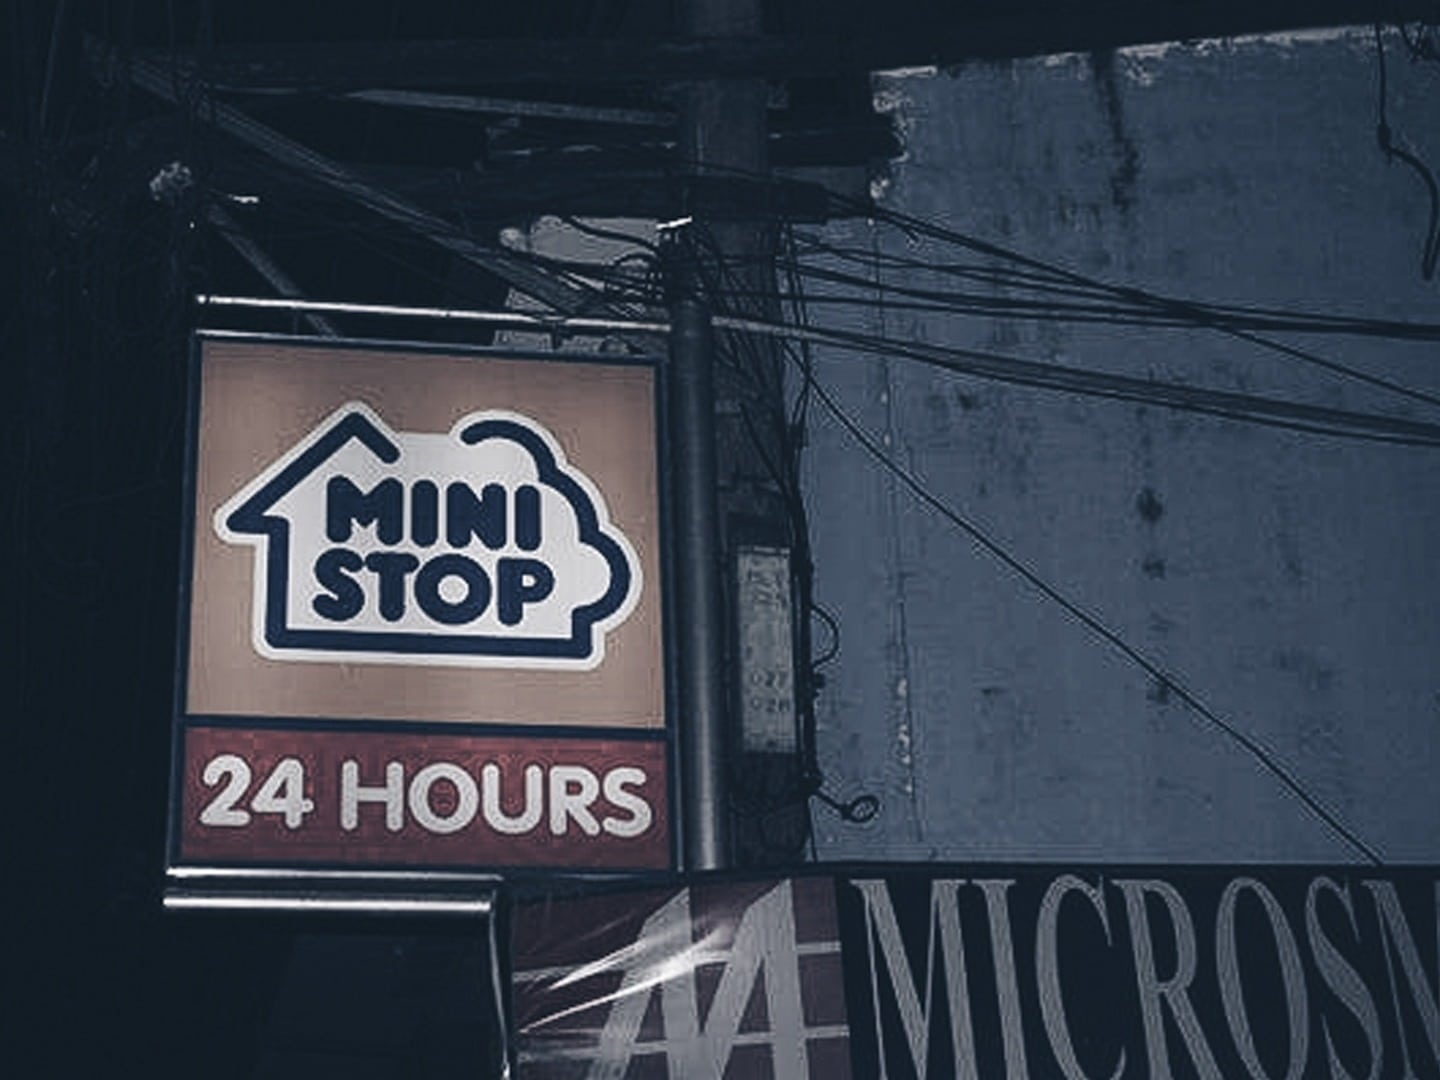 The signage for Ministop sda says 24 hours